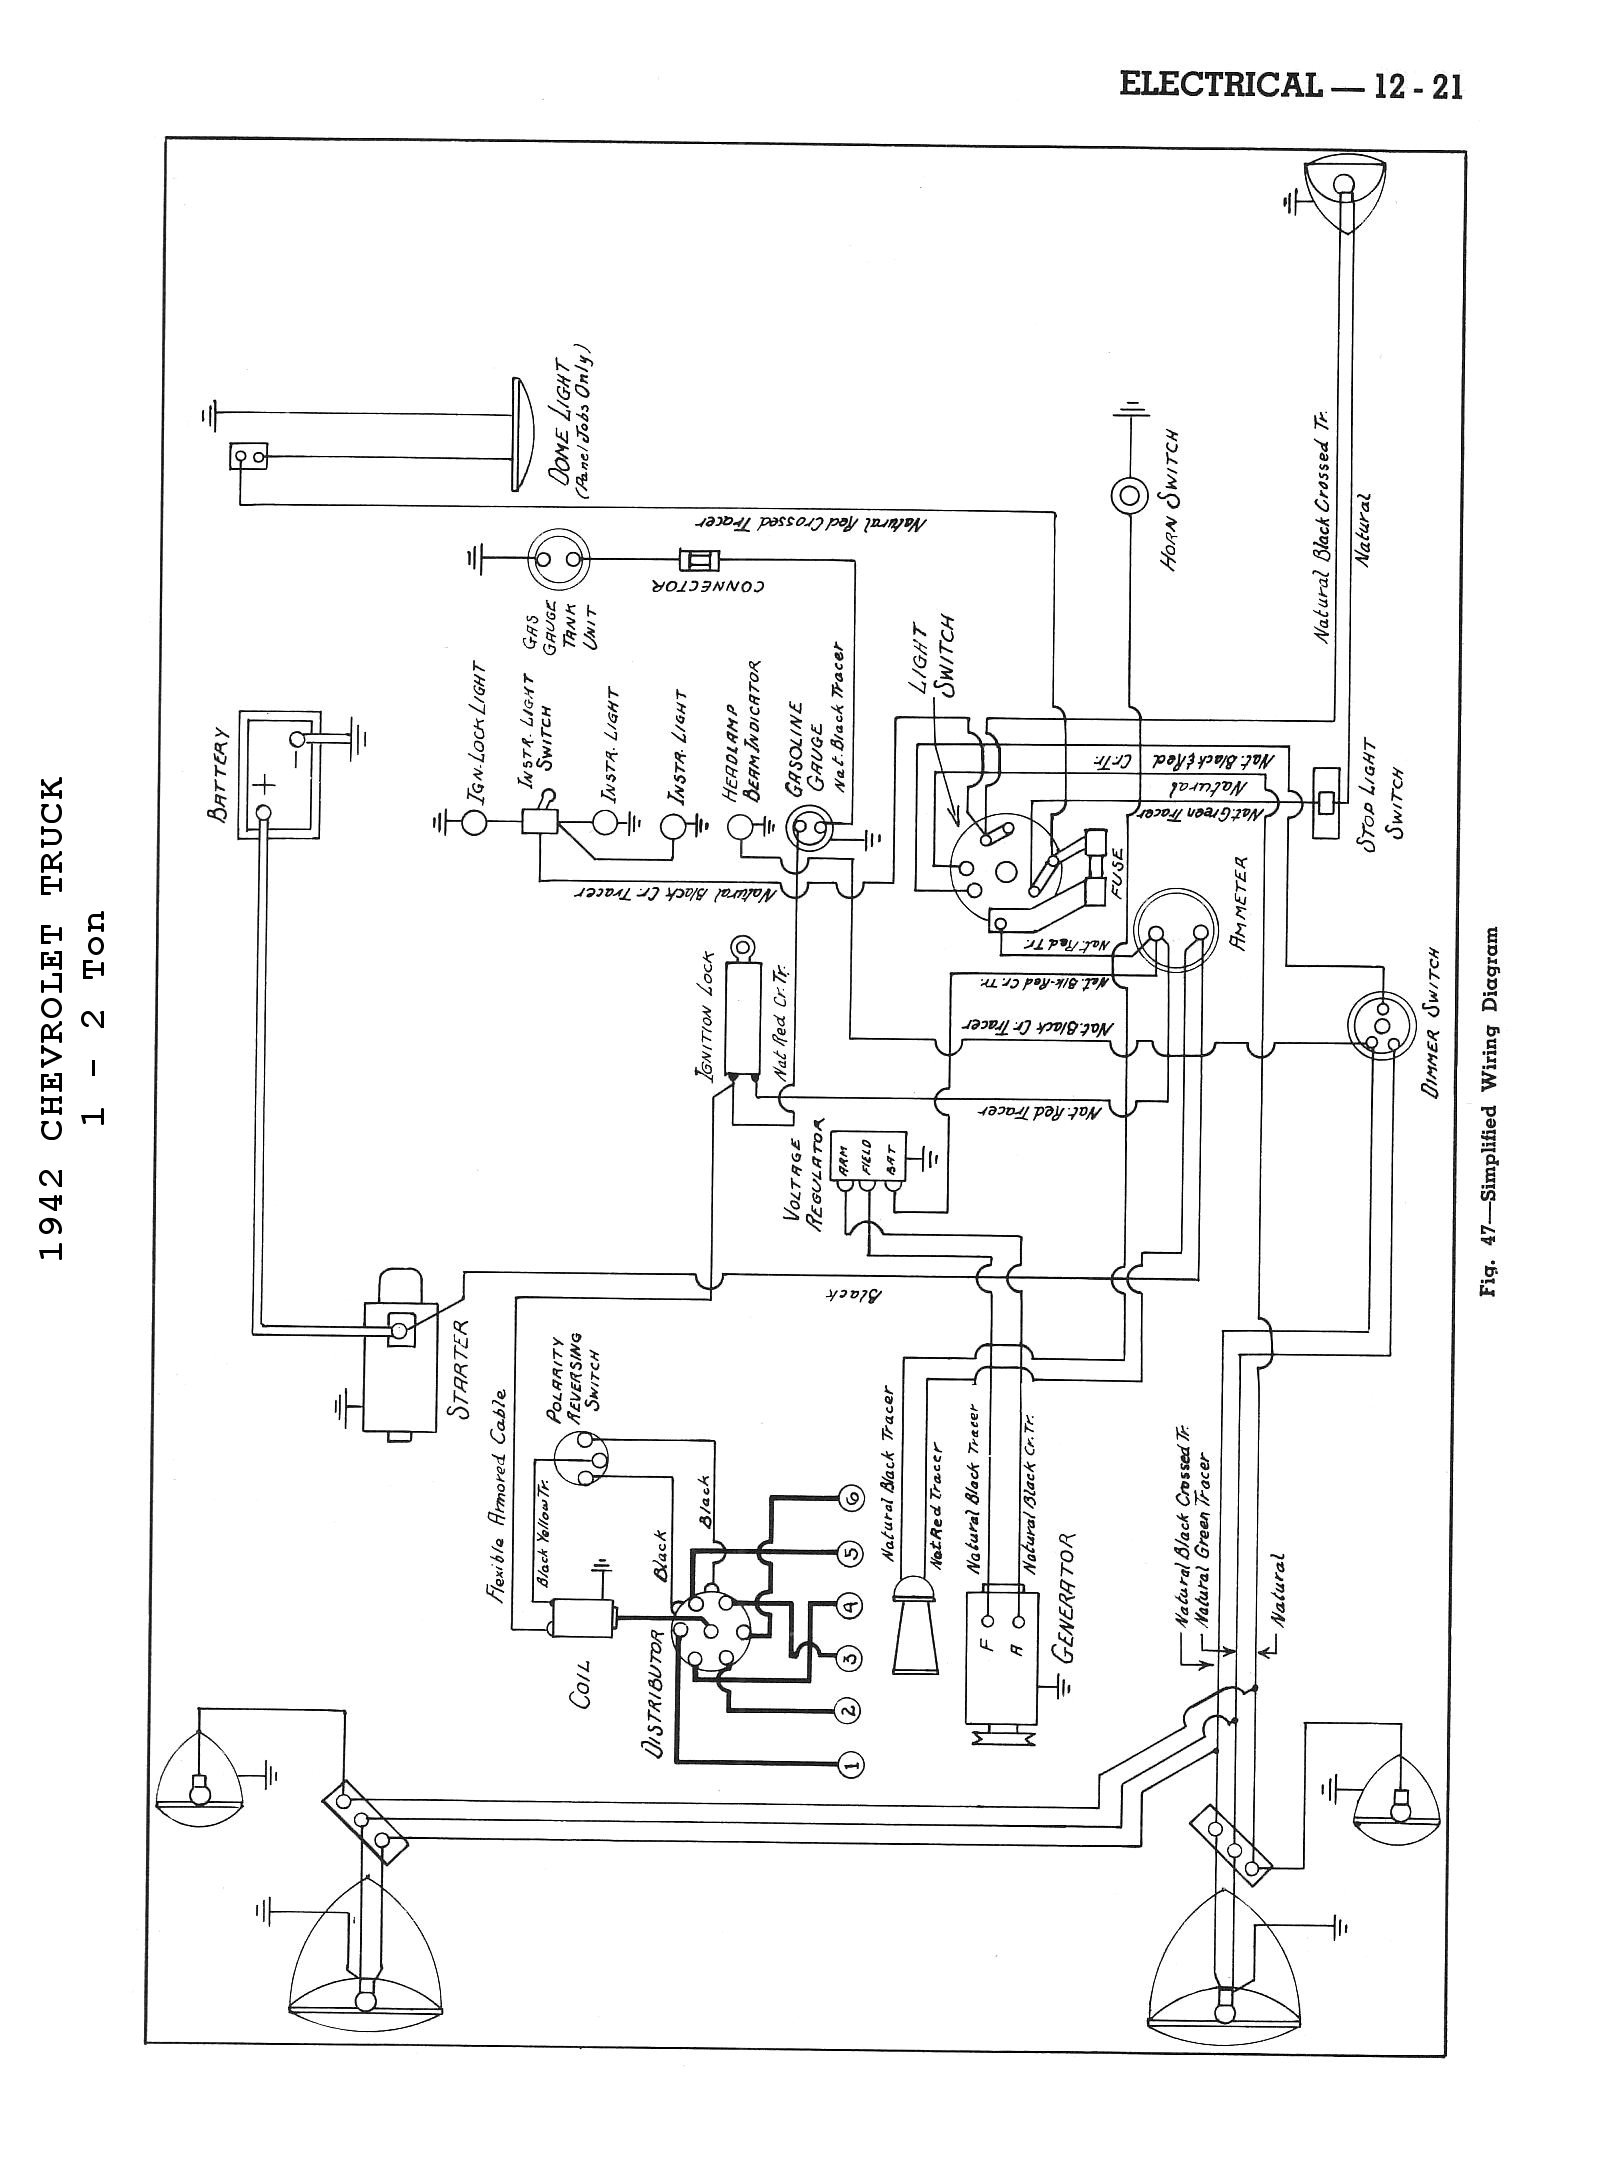 Cm X T on 1953 Bel Air Wiring Diagram